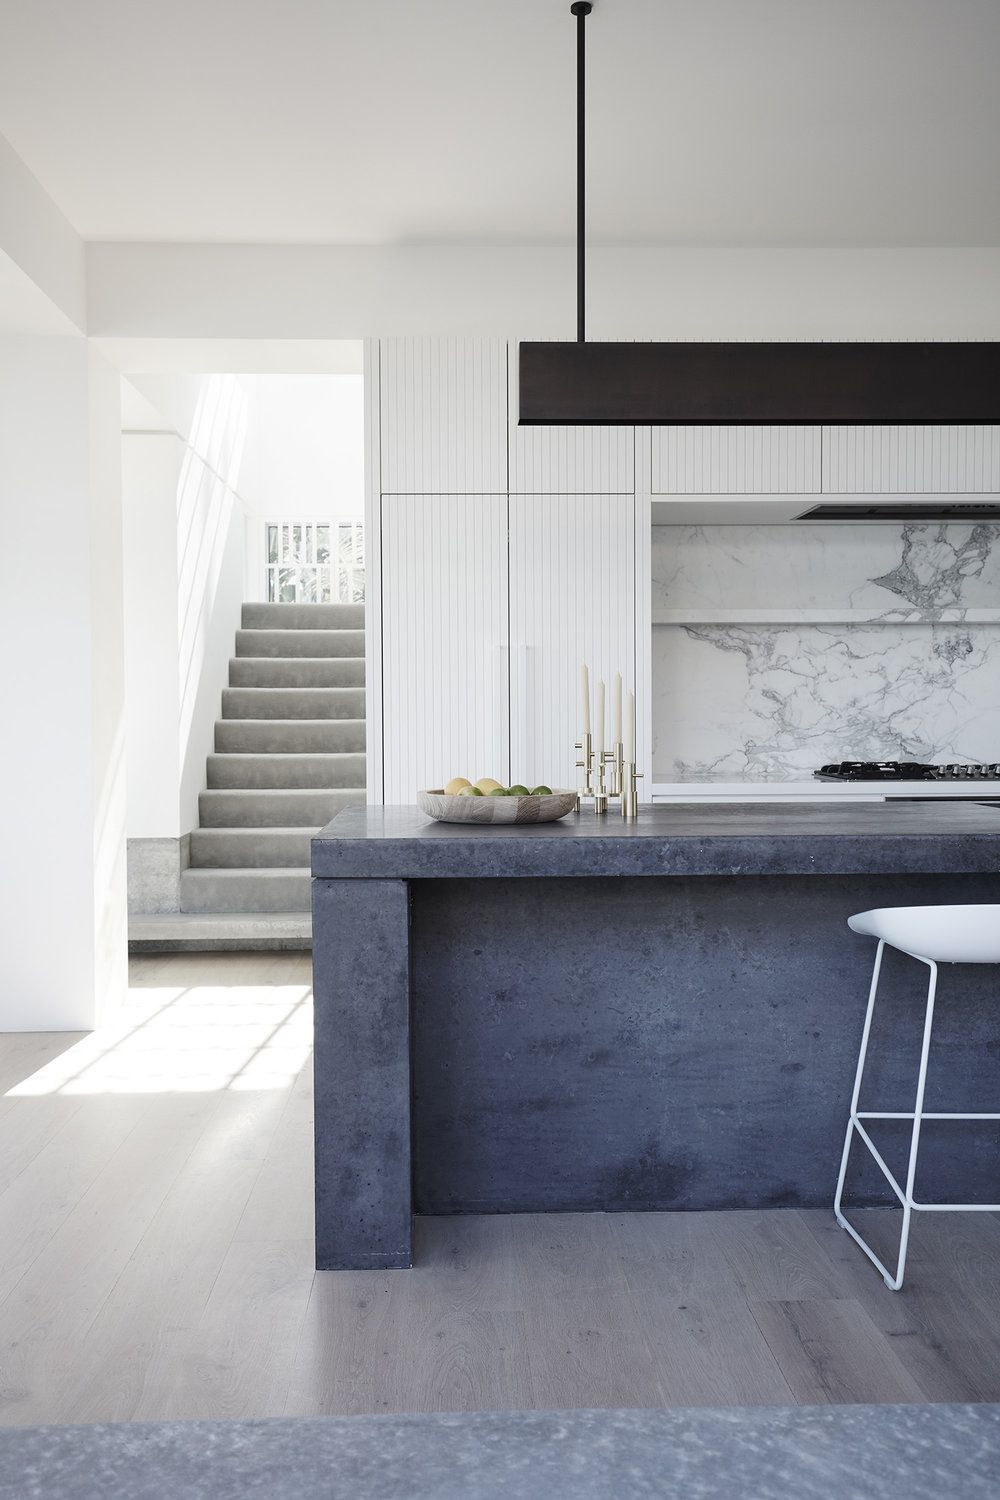 Australian Design, Modern Sleek Kitchen, Minimal Kitchen, Calacatta Marble  Backsplash, Concrete Island, White Cabinets, Gray Cabinets, Limed Oak  Floors, ...